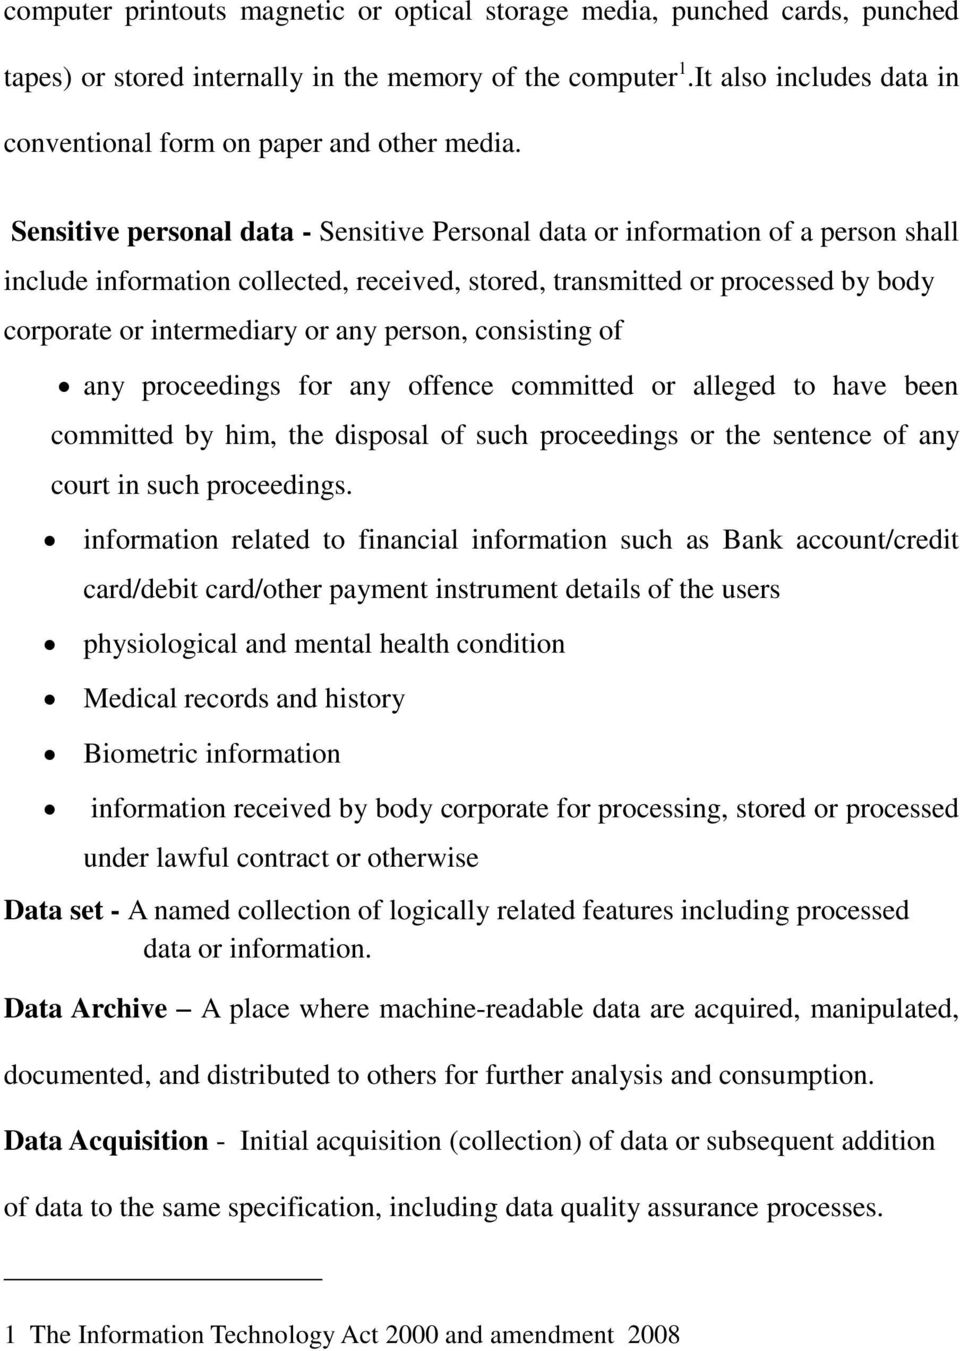 Sensitive personal data - Sensitive Personal data or information of a person shall include information collected, received, stored, transmitted or processed by body corporate or intermediary or any